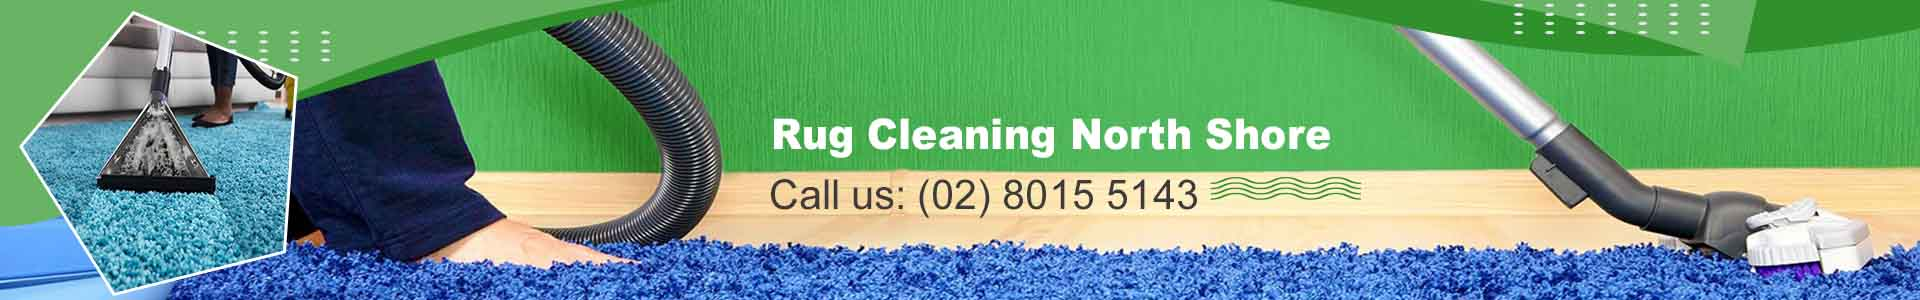 Rug Cleaning North Shore